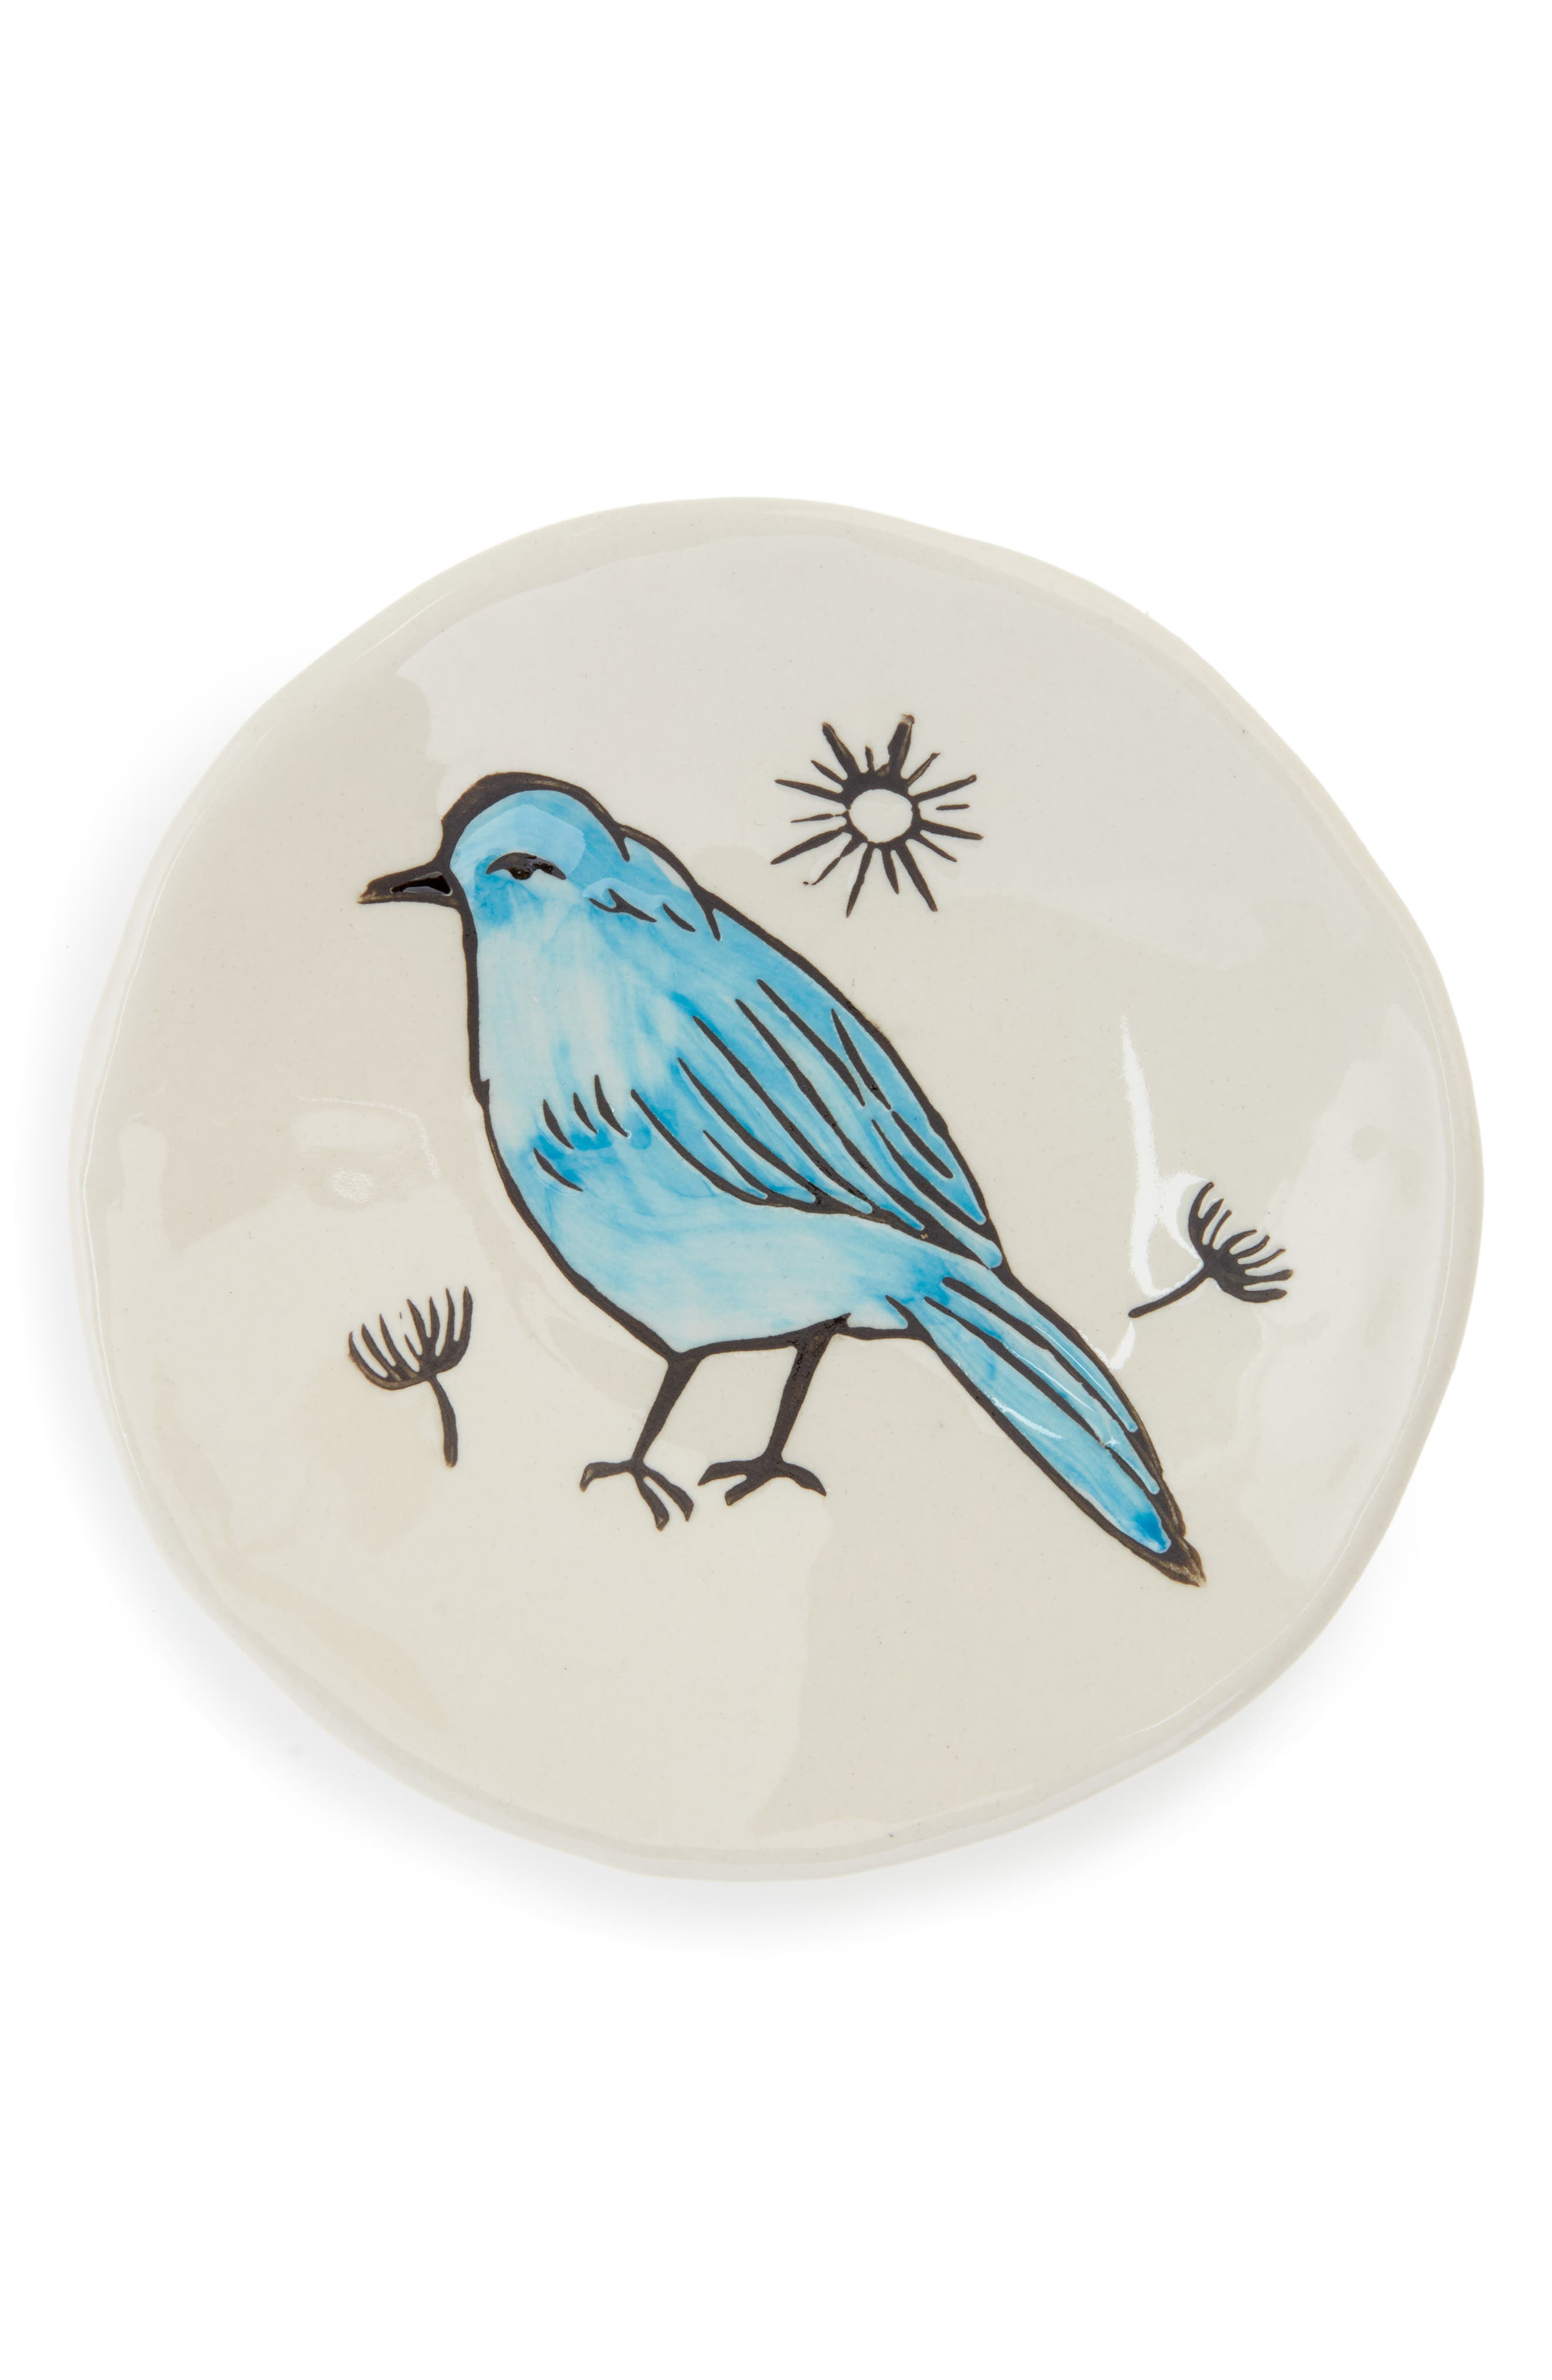 Small Bird Plate,                             Main thumbnail 1, color,                             White